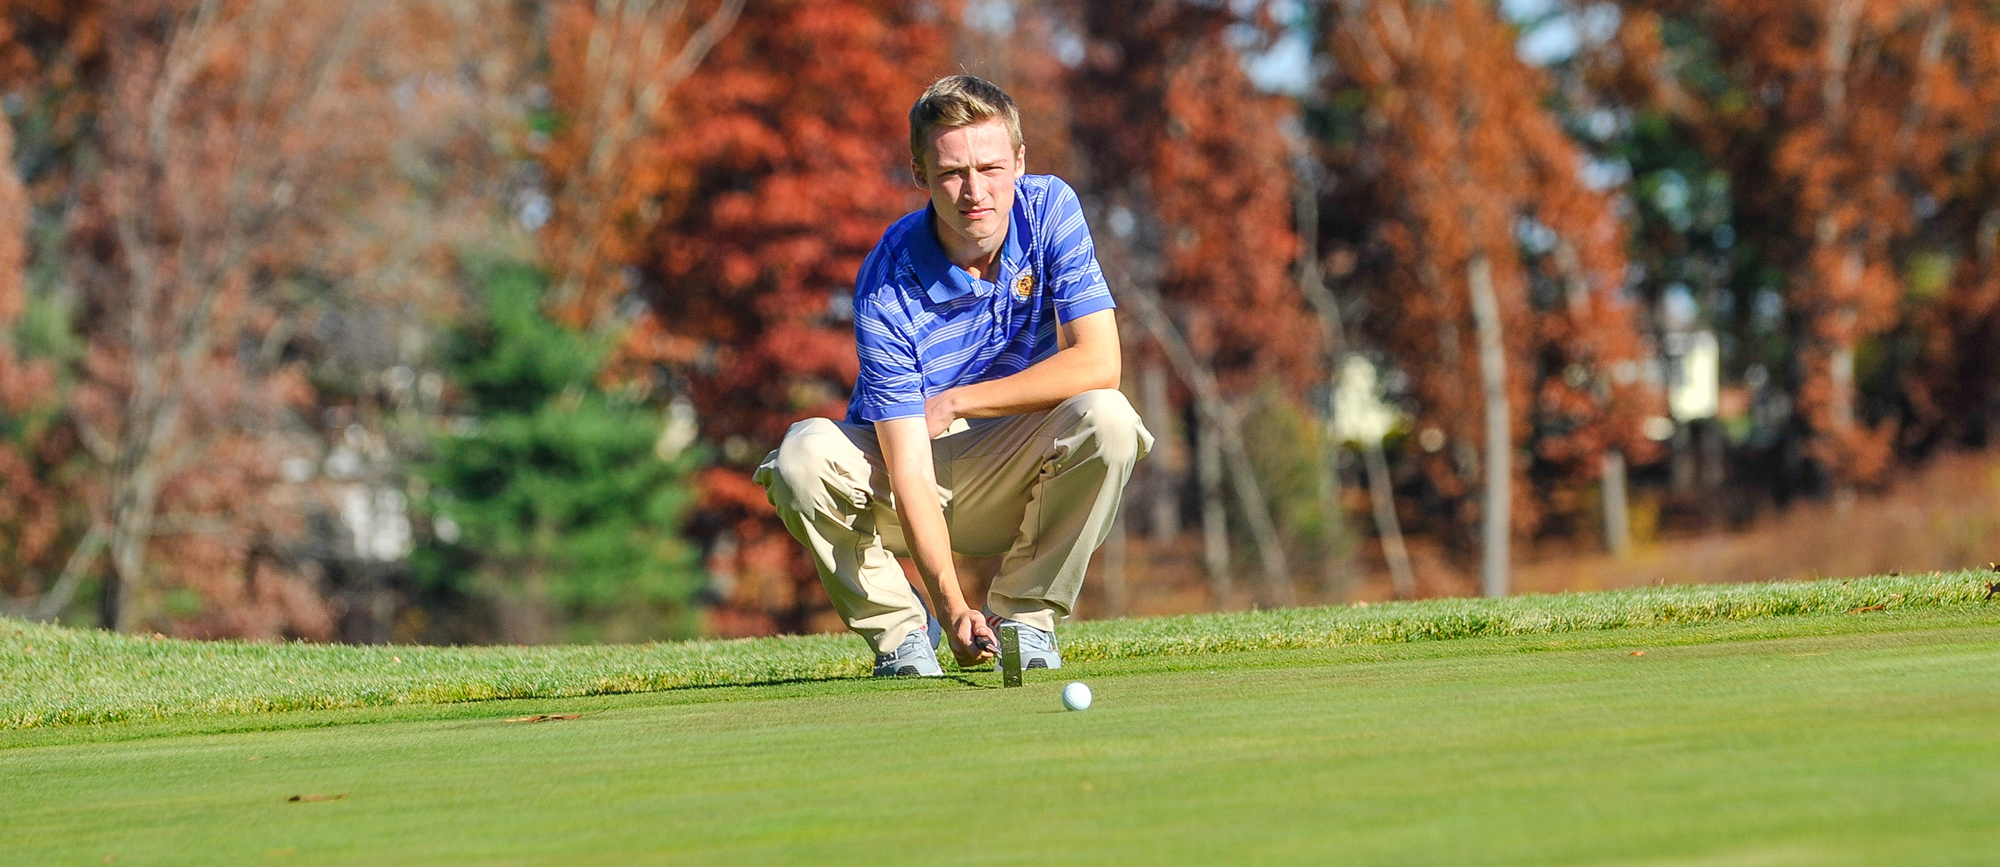 Abbott Leads Golden Bears During Round One of Williams Fall Invitational